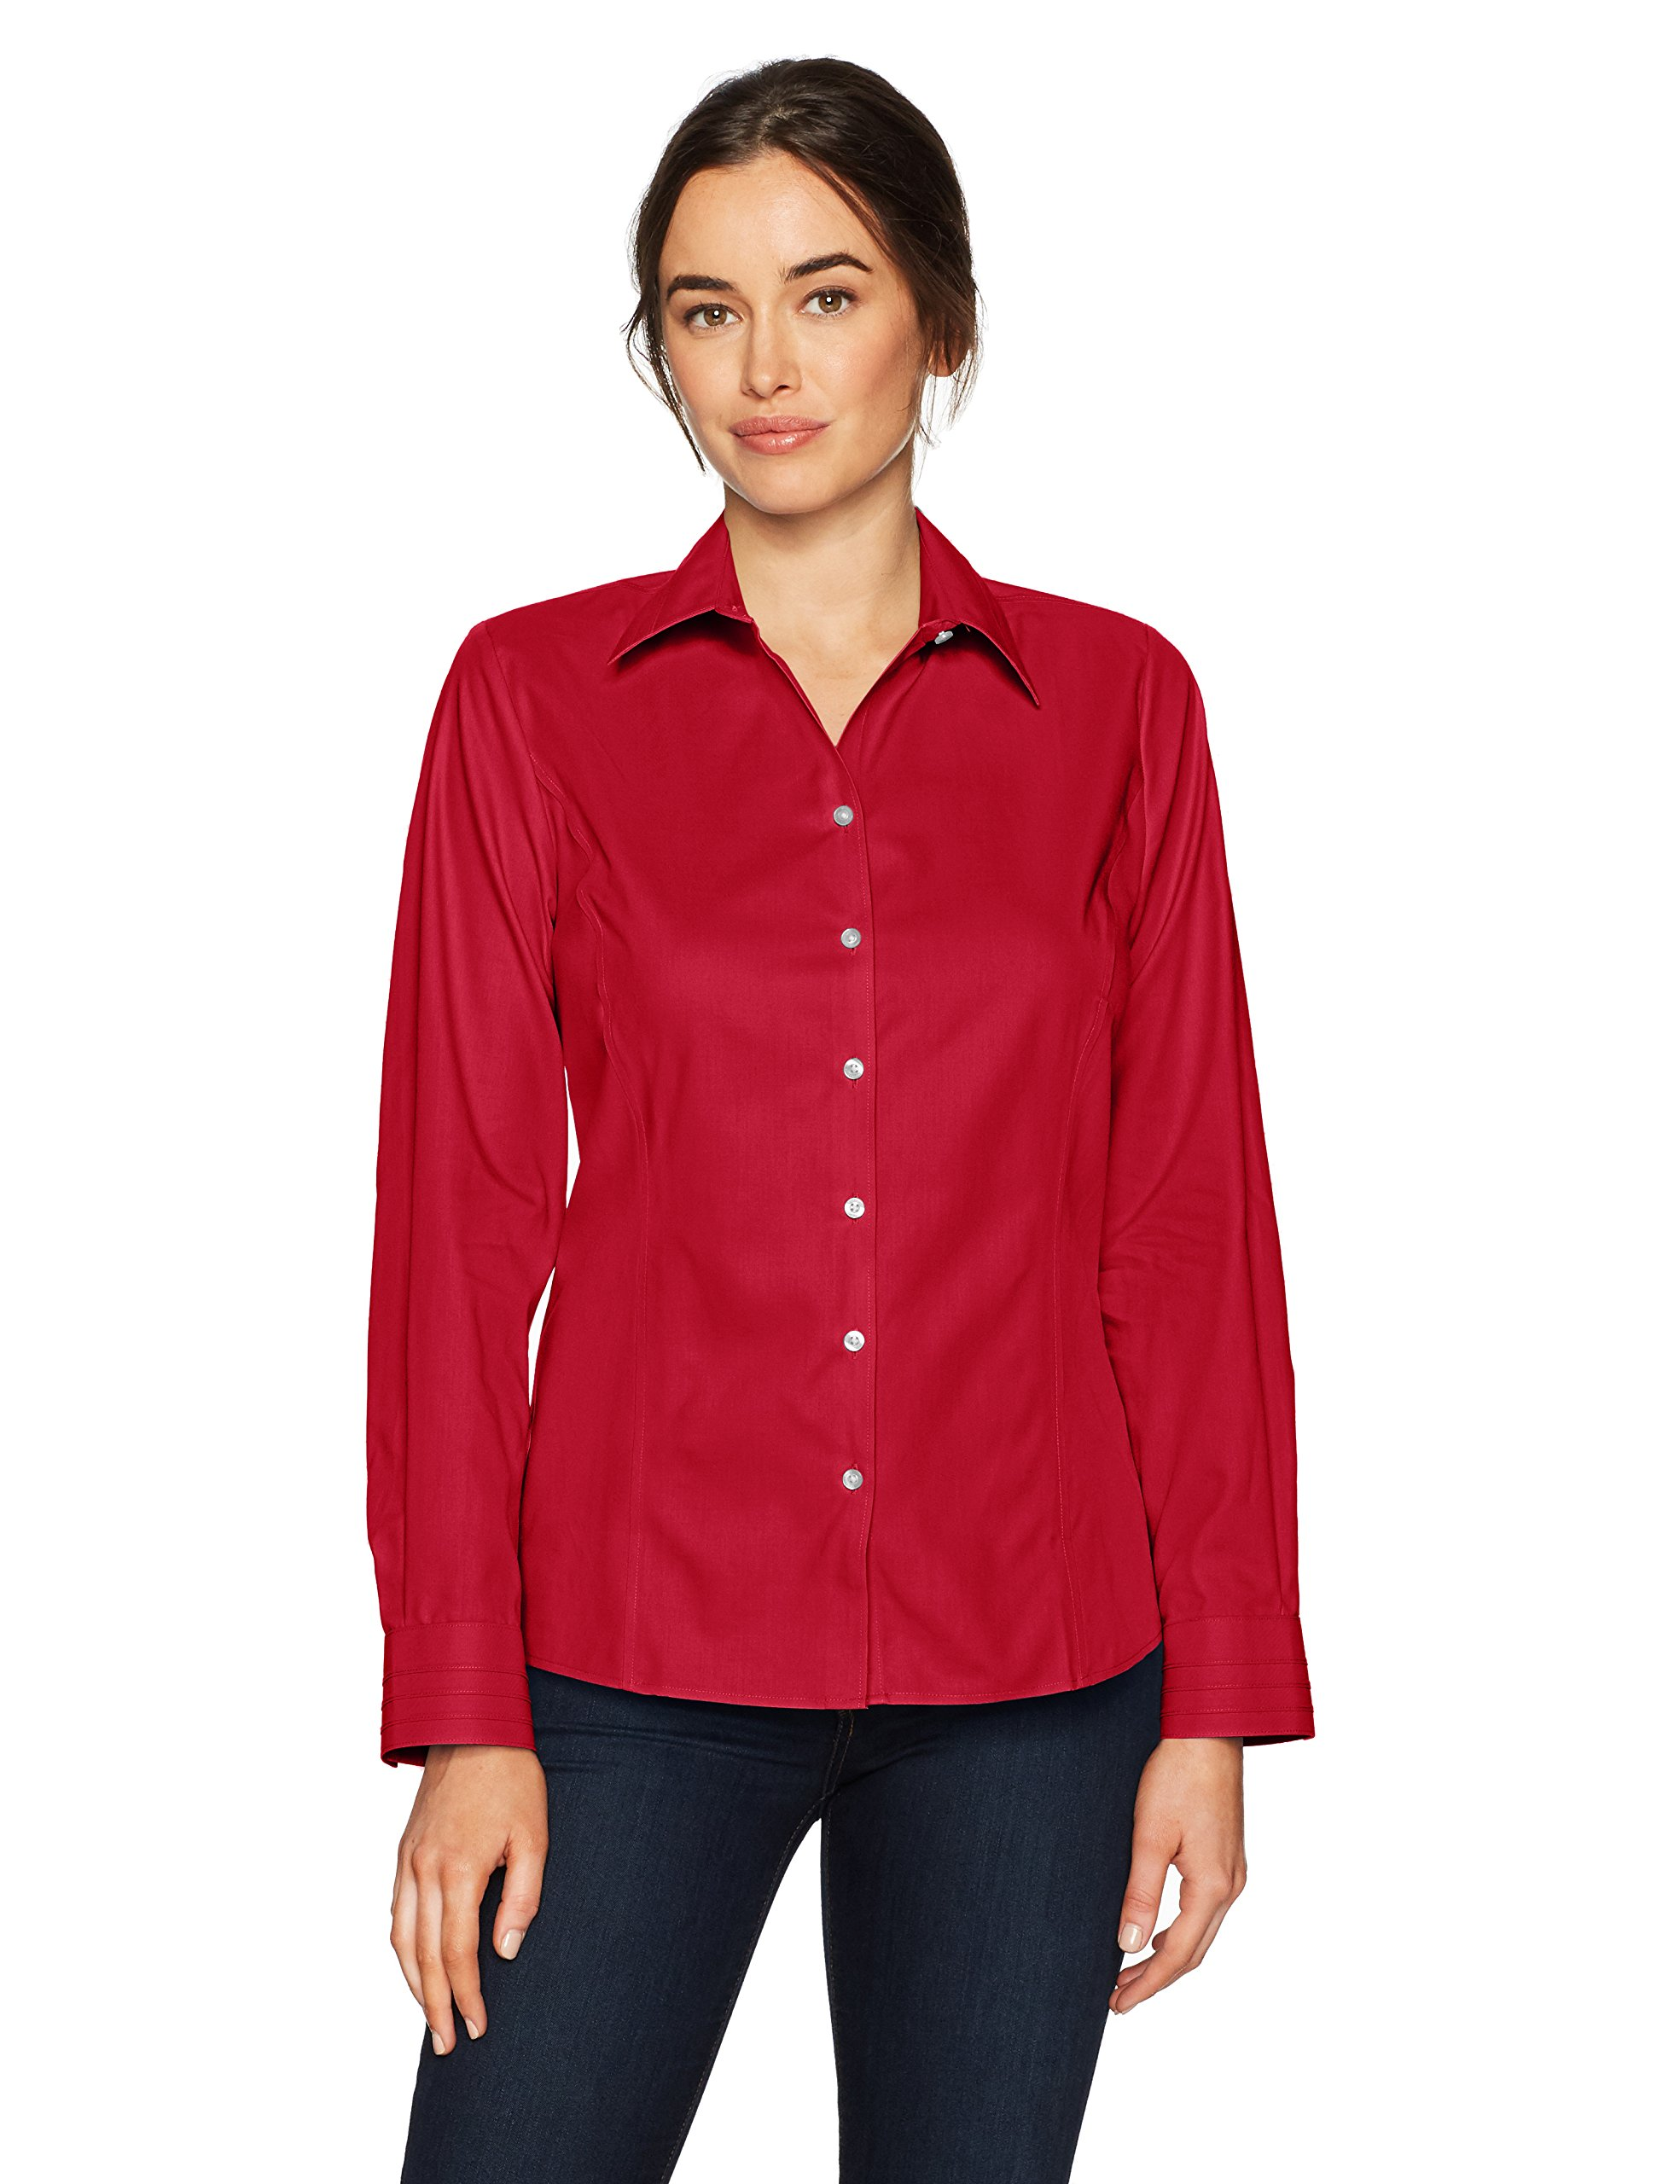 Cutter & Buck Women's Epic Easy Care Long Sleeve Fine Twill Collared Shirt, Cardinal Red, M